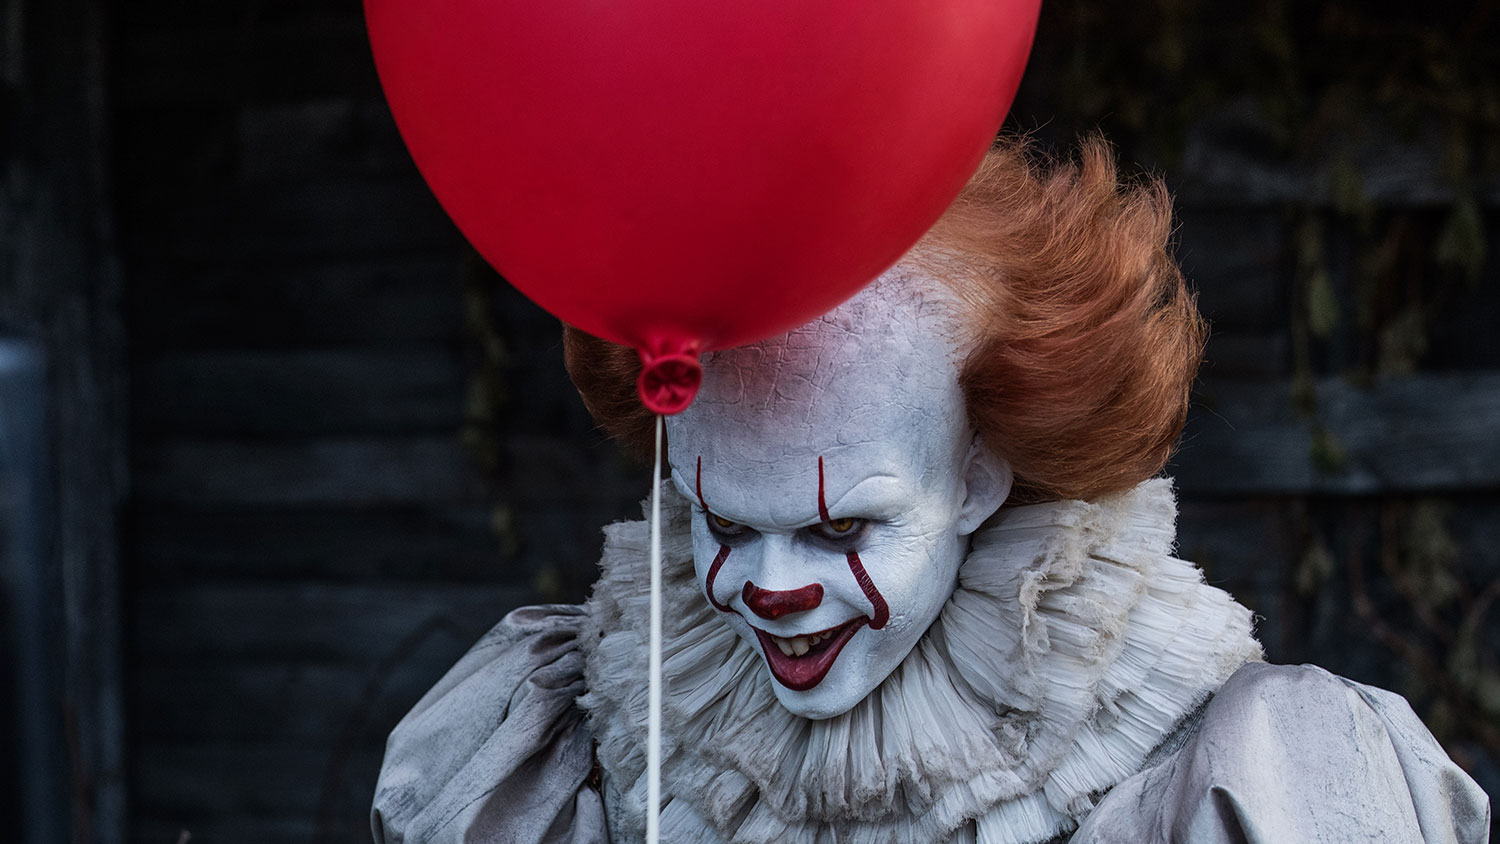 'It' shatters box office records